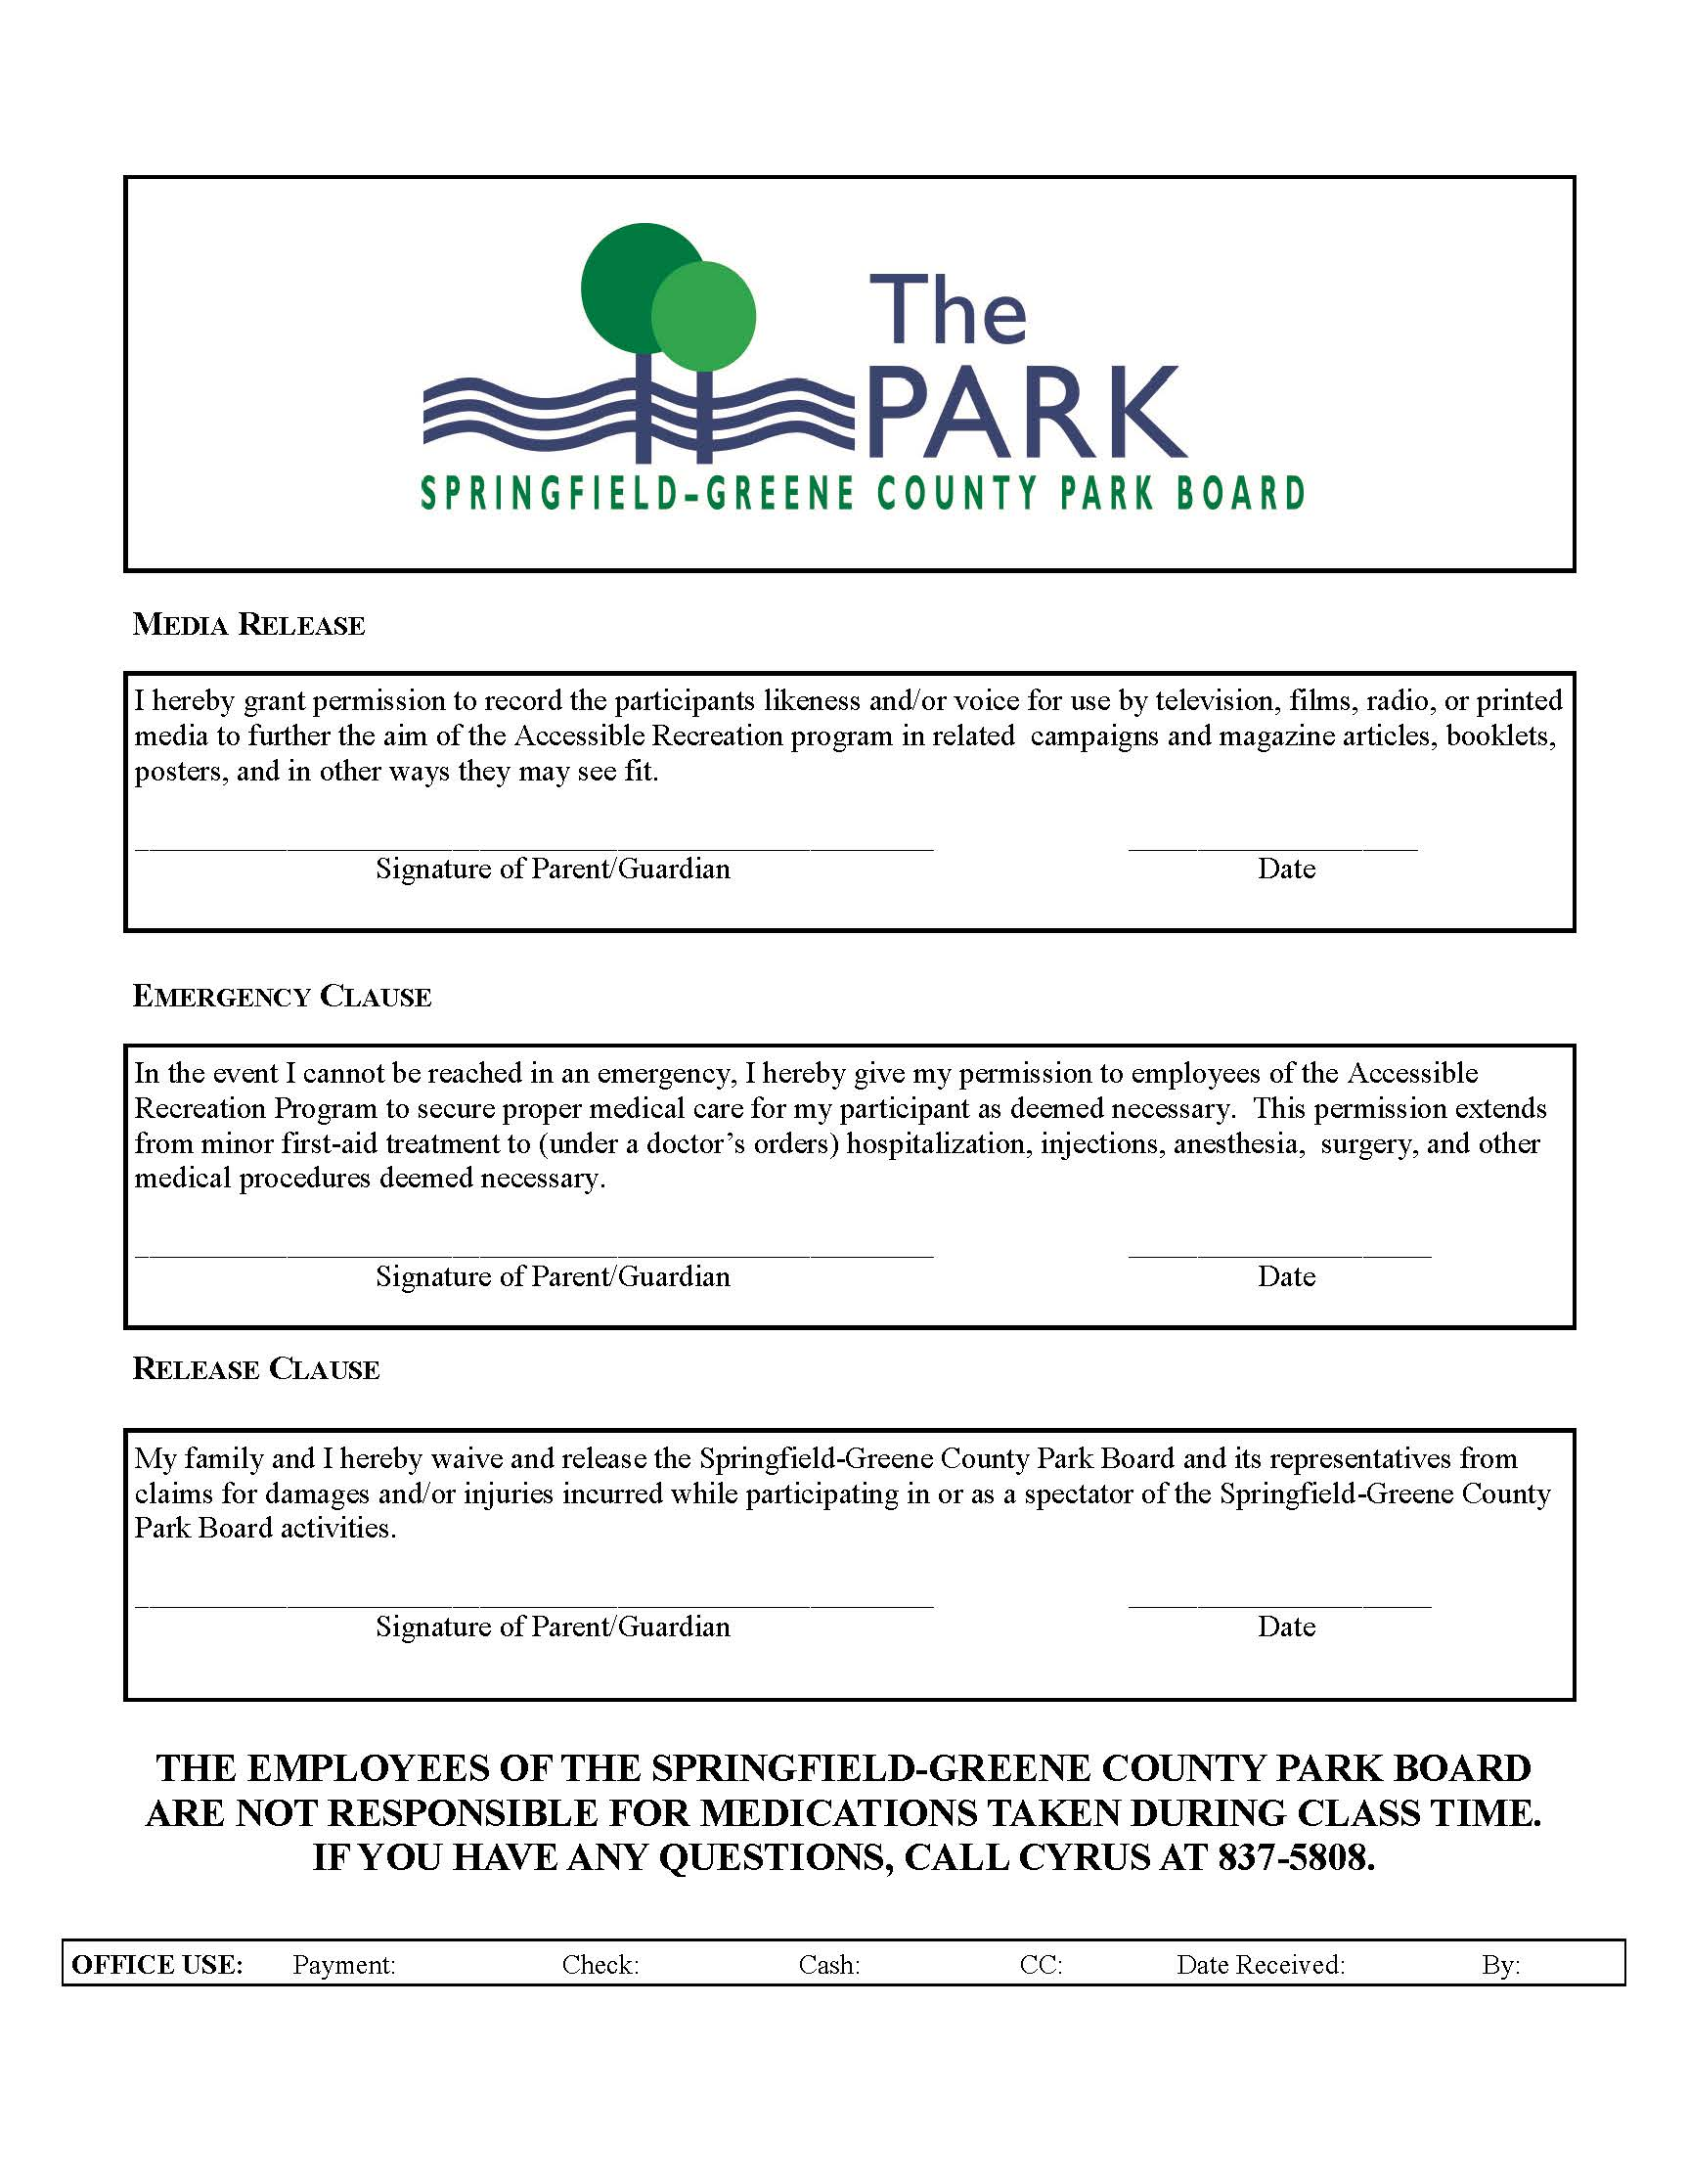 Registration Form for 5 and Up Page 2